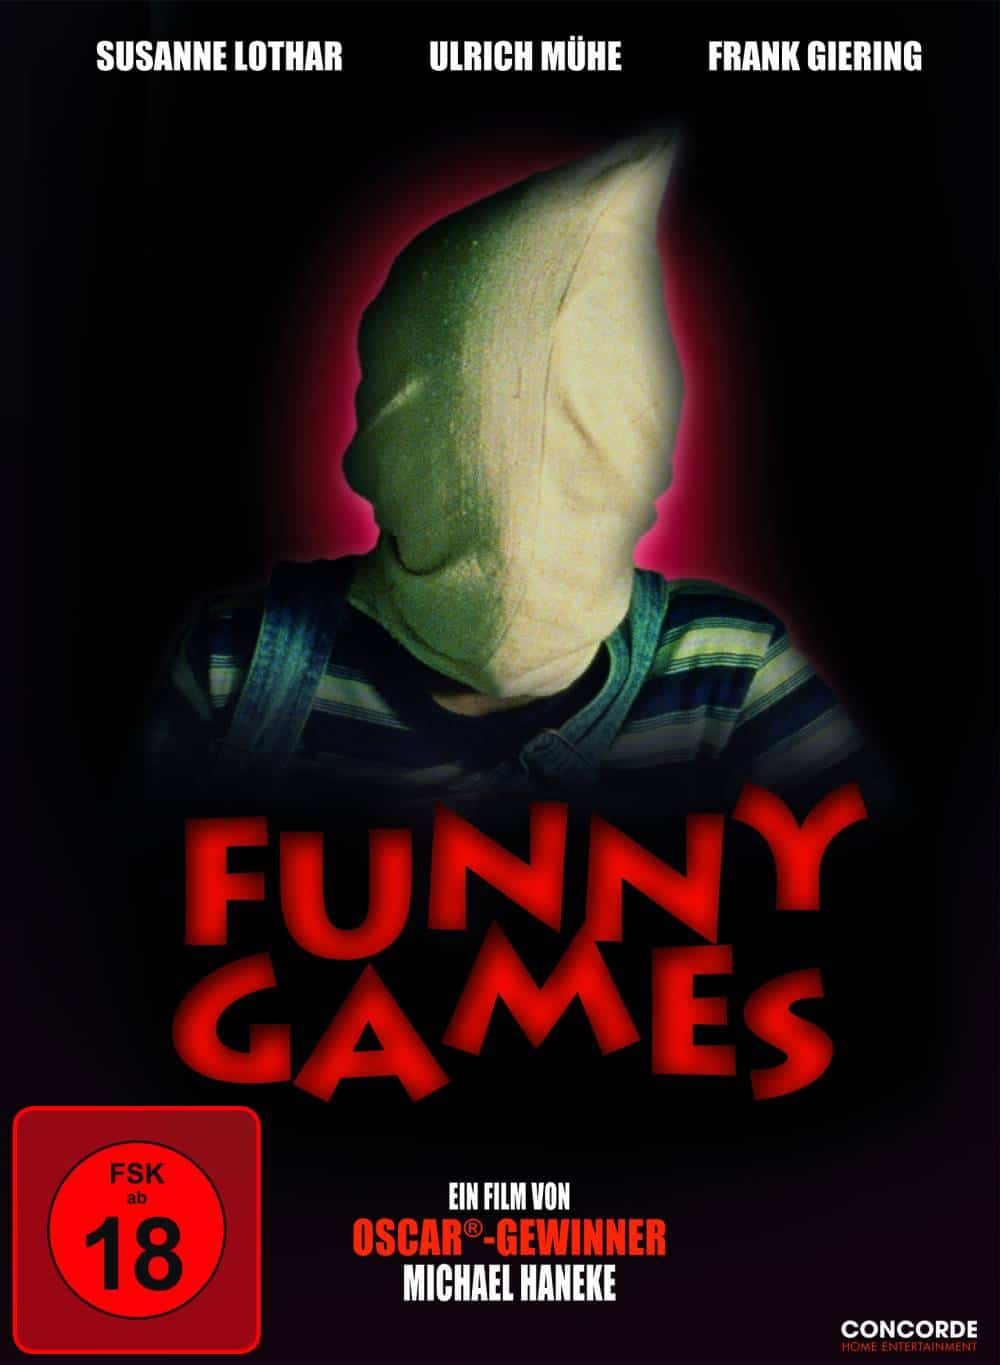 Funny Games - Film 1997 - Scary-Movies.de Funny Games Hartenjagen